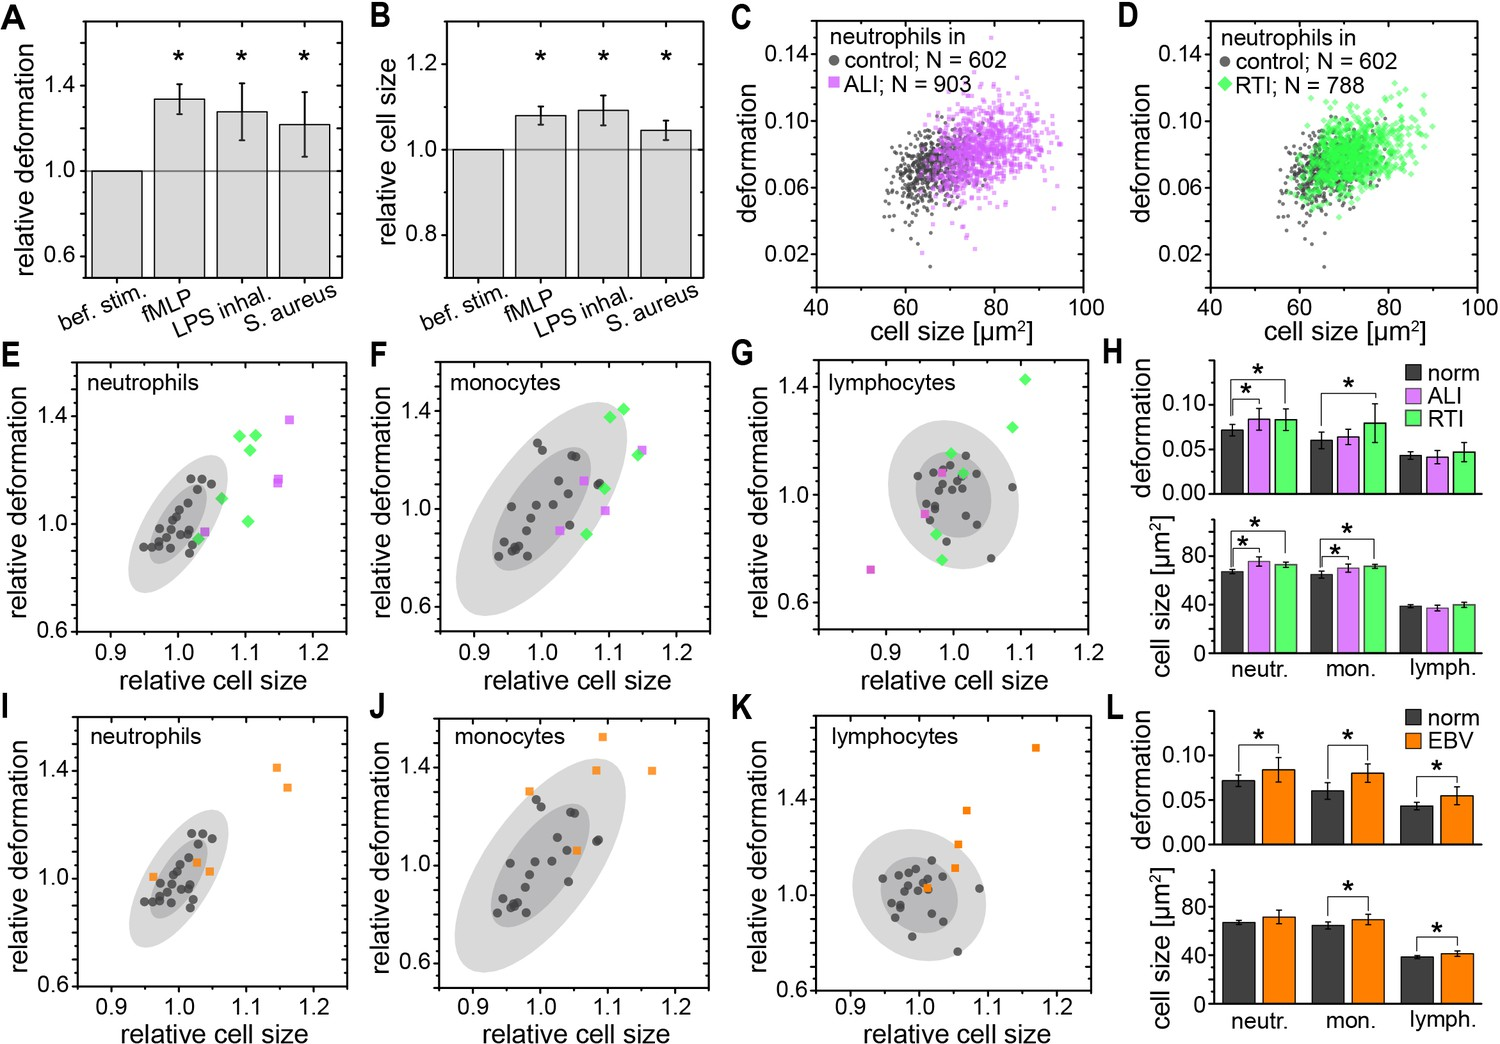 Detection of human disease conditions by single-cell morpho